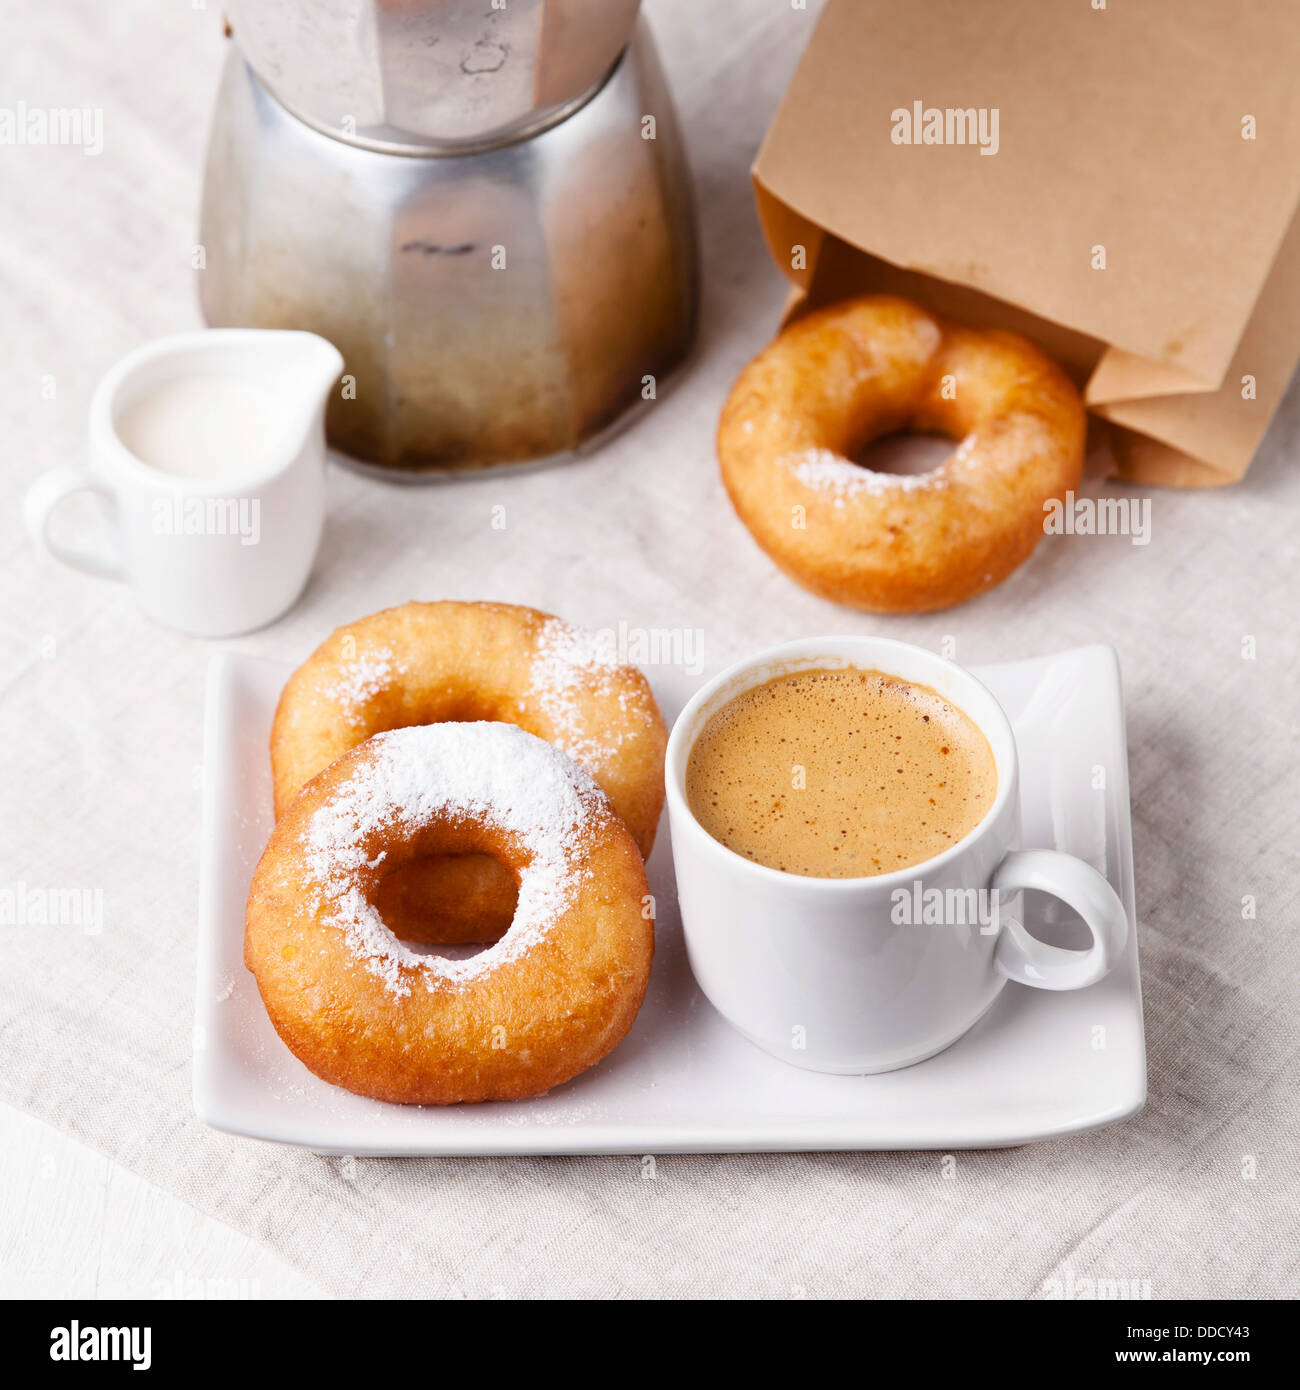 Donuts and coffee on morning breakfast table - Stock Image